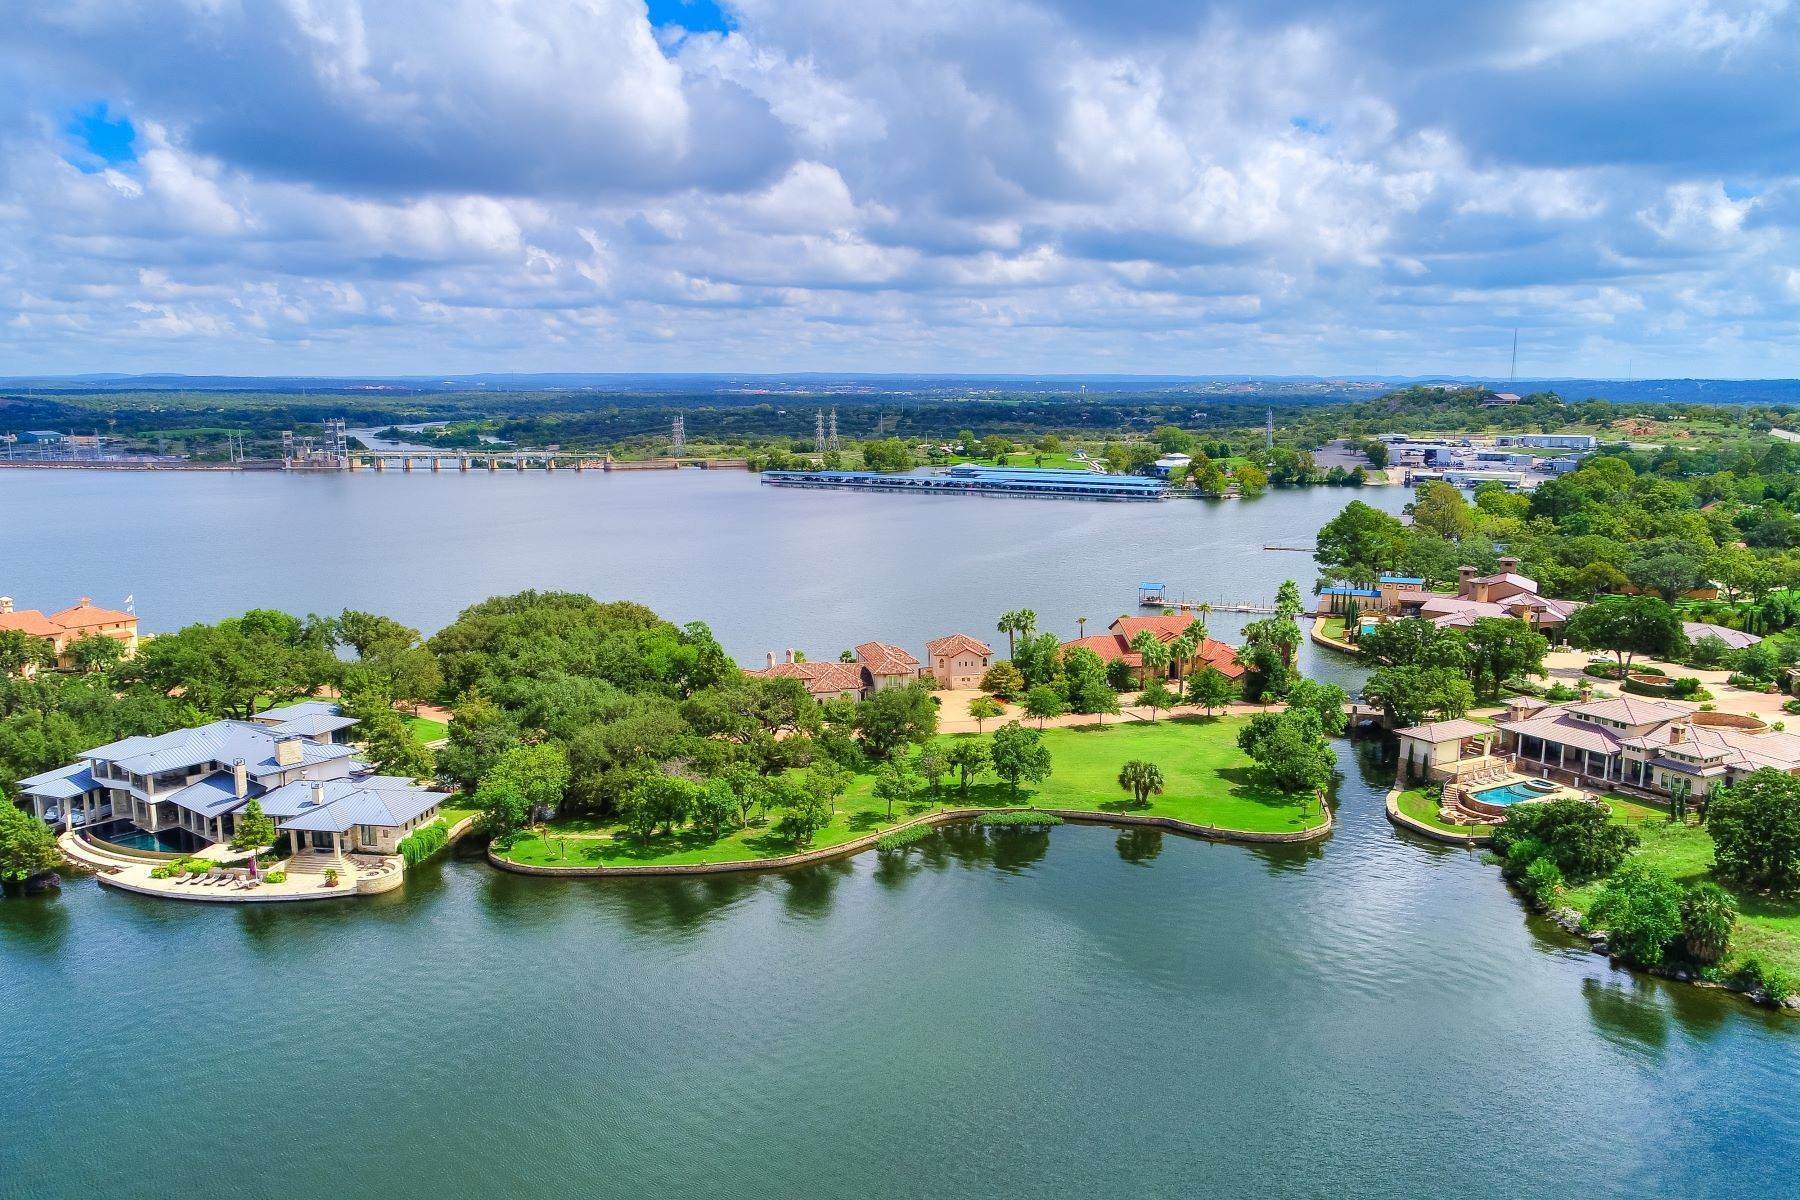 Land for Sale at Legacy Lot 7-A Estate Drive, Horseshoe Bay, TX 78657 Legacy Lot 7-A Estate Drive Horseshoe Bay, Texas 78657 United States